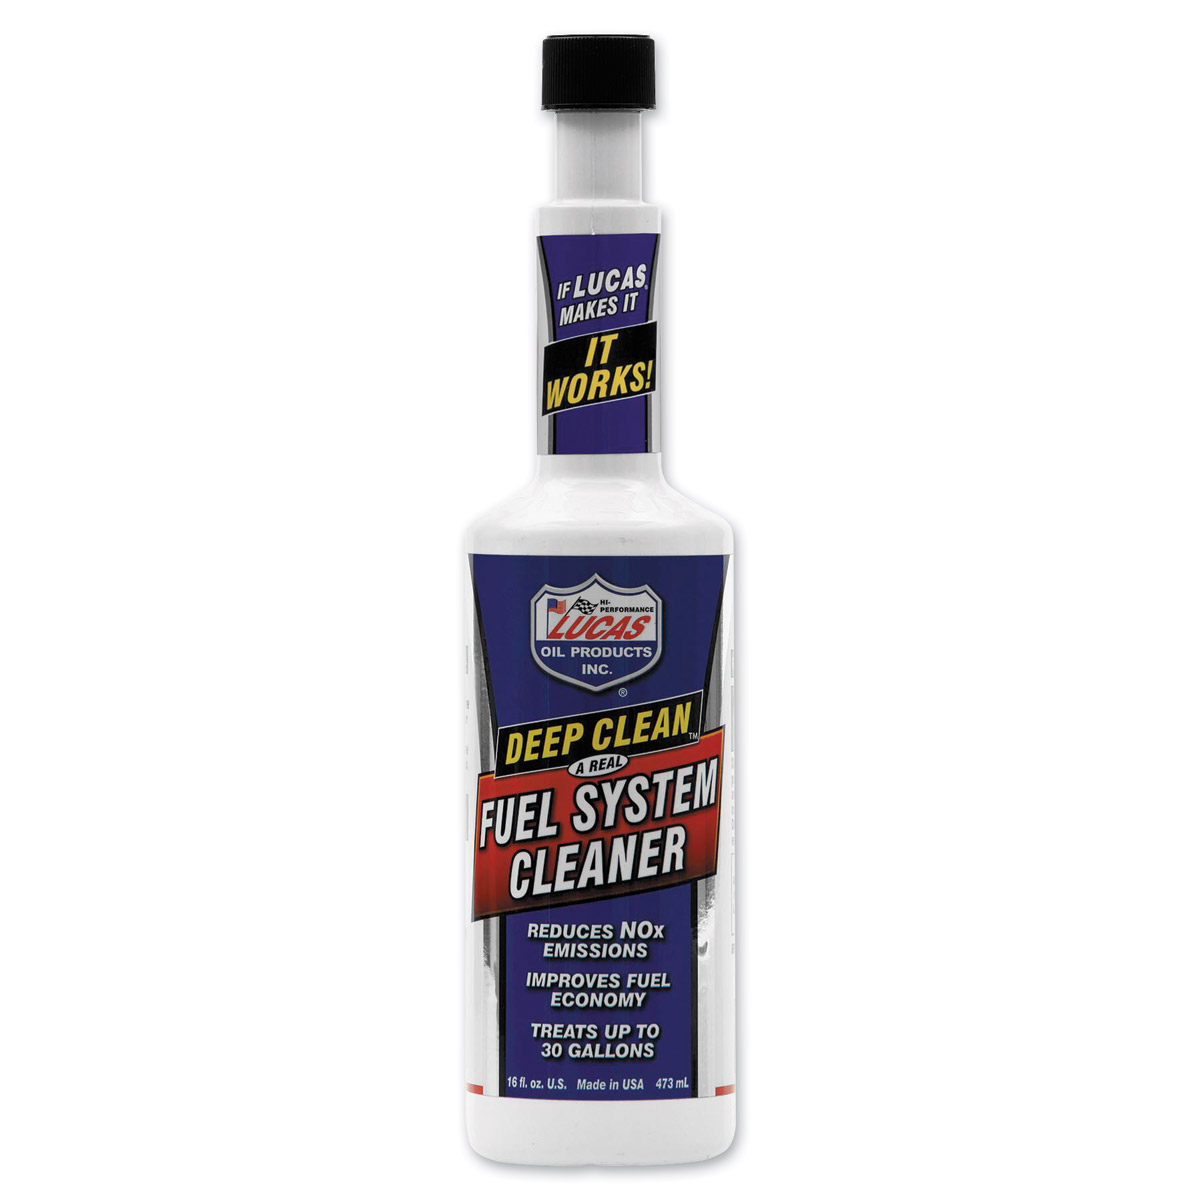 Lucas Deep Clean Fuel System Cleaner 16 oz